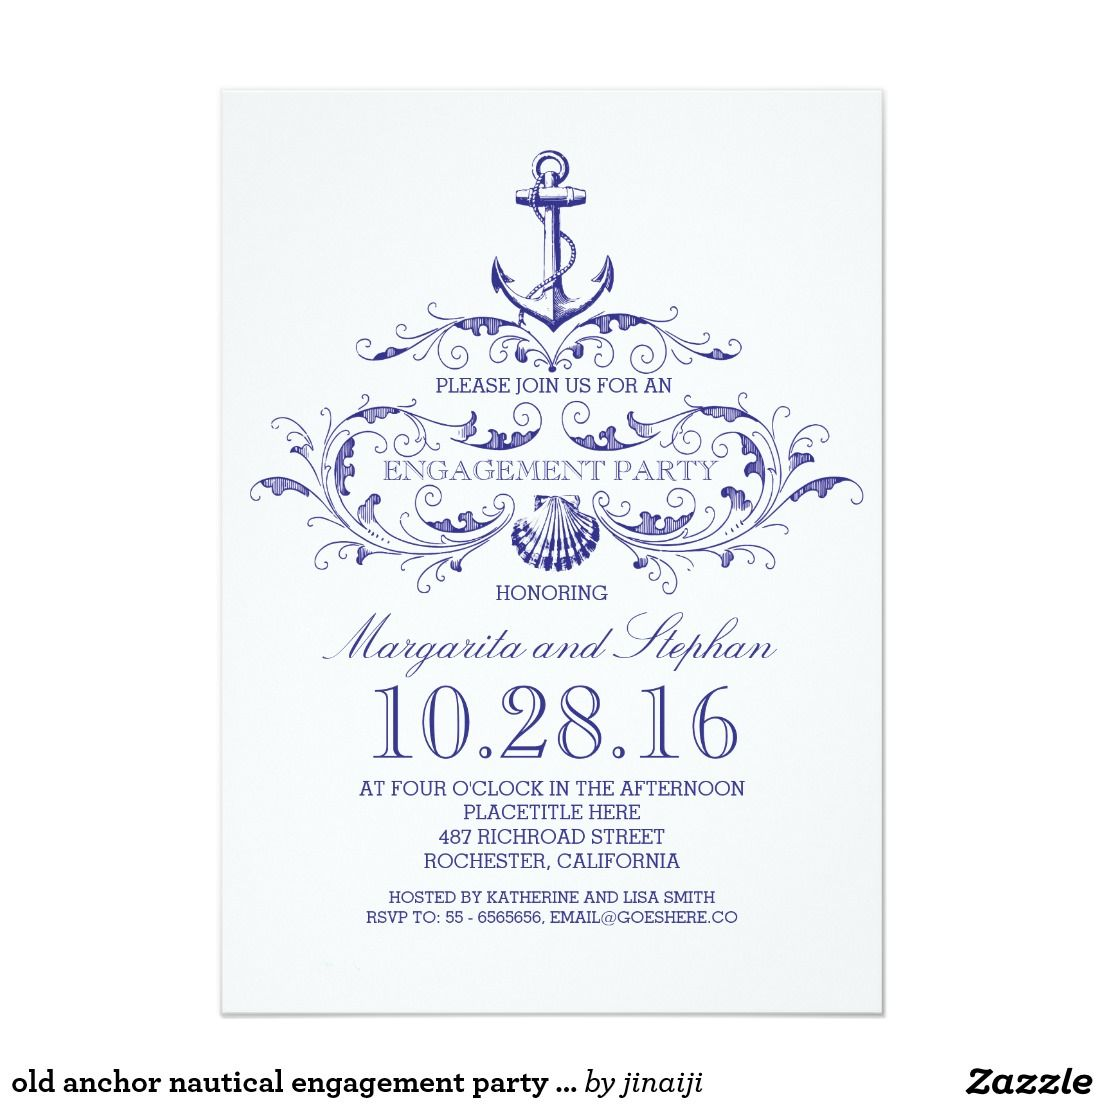 Old anchor nautical engagement party invite   Nautical engagement ...